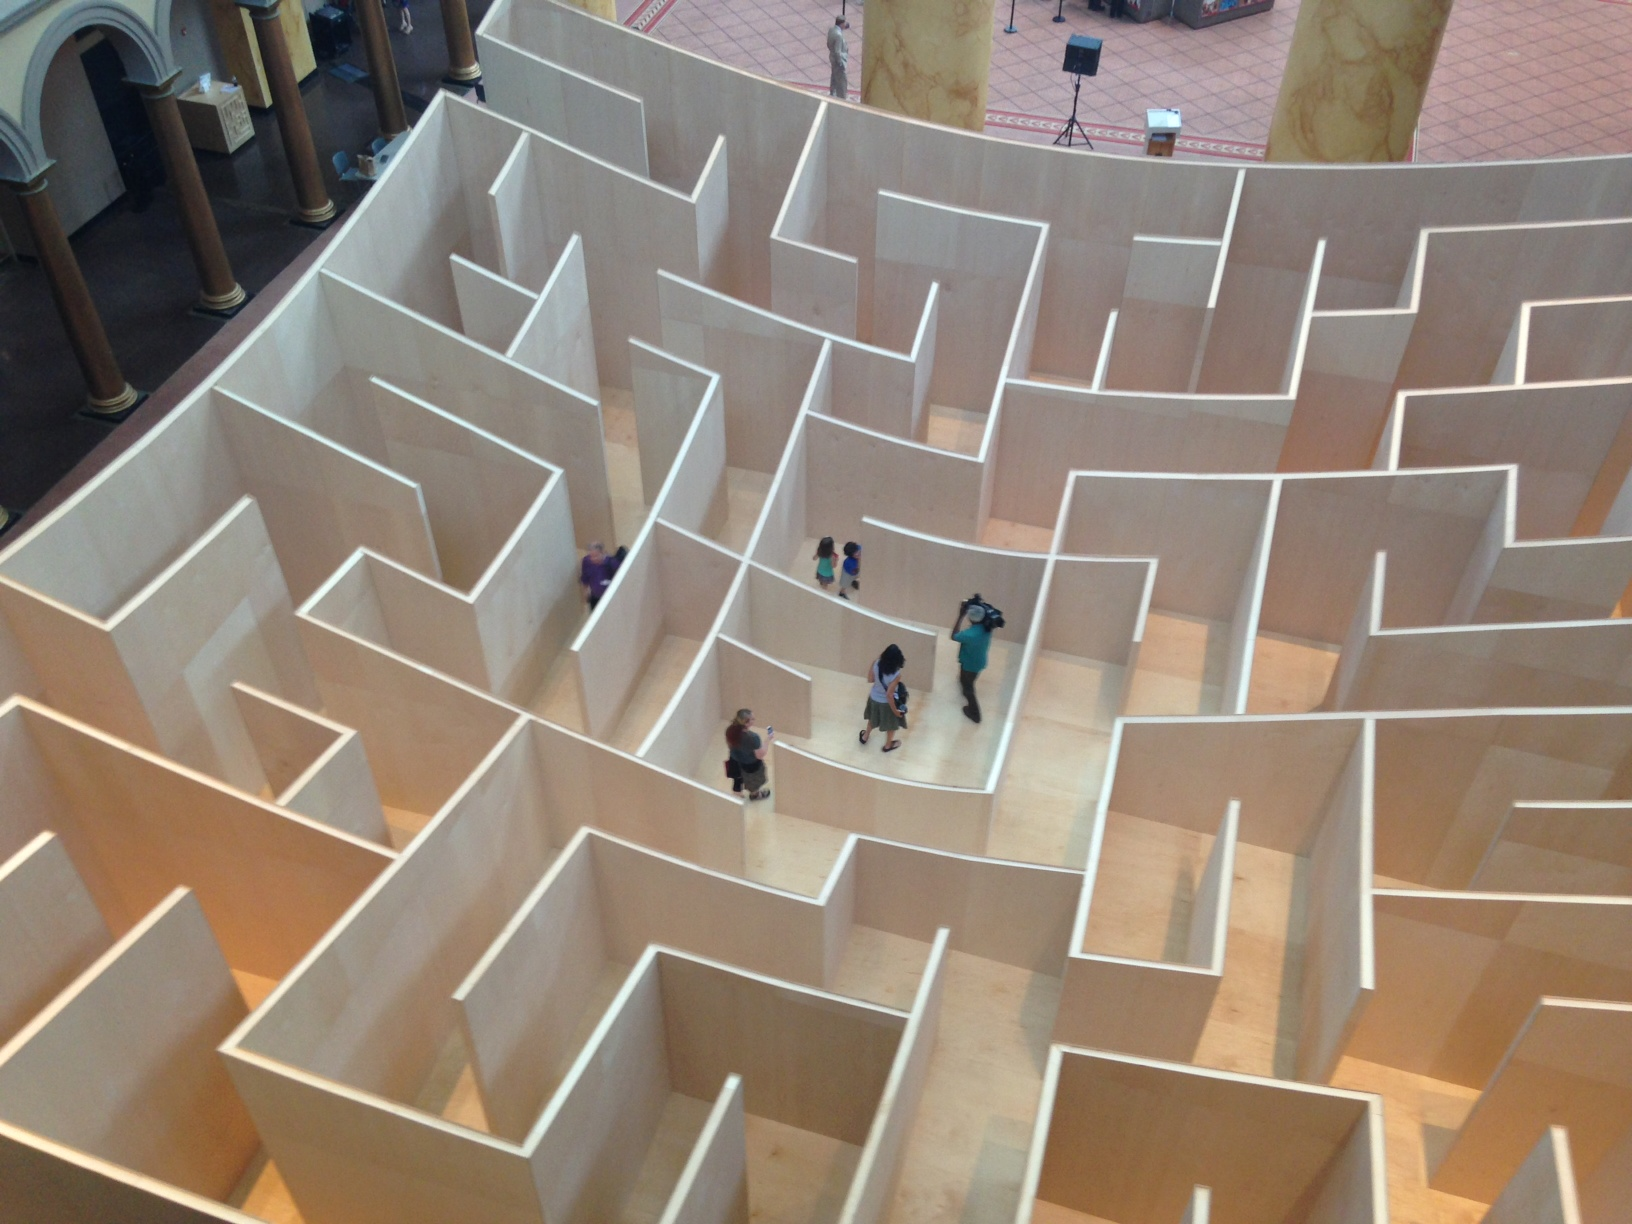 Giant maze taking over National Building Museum